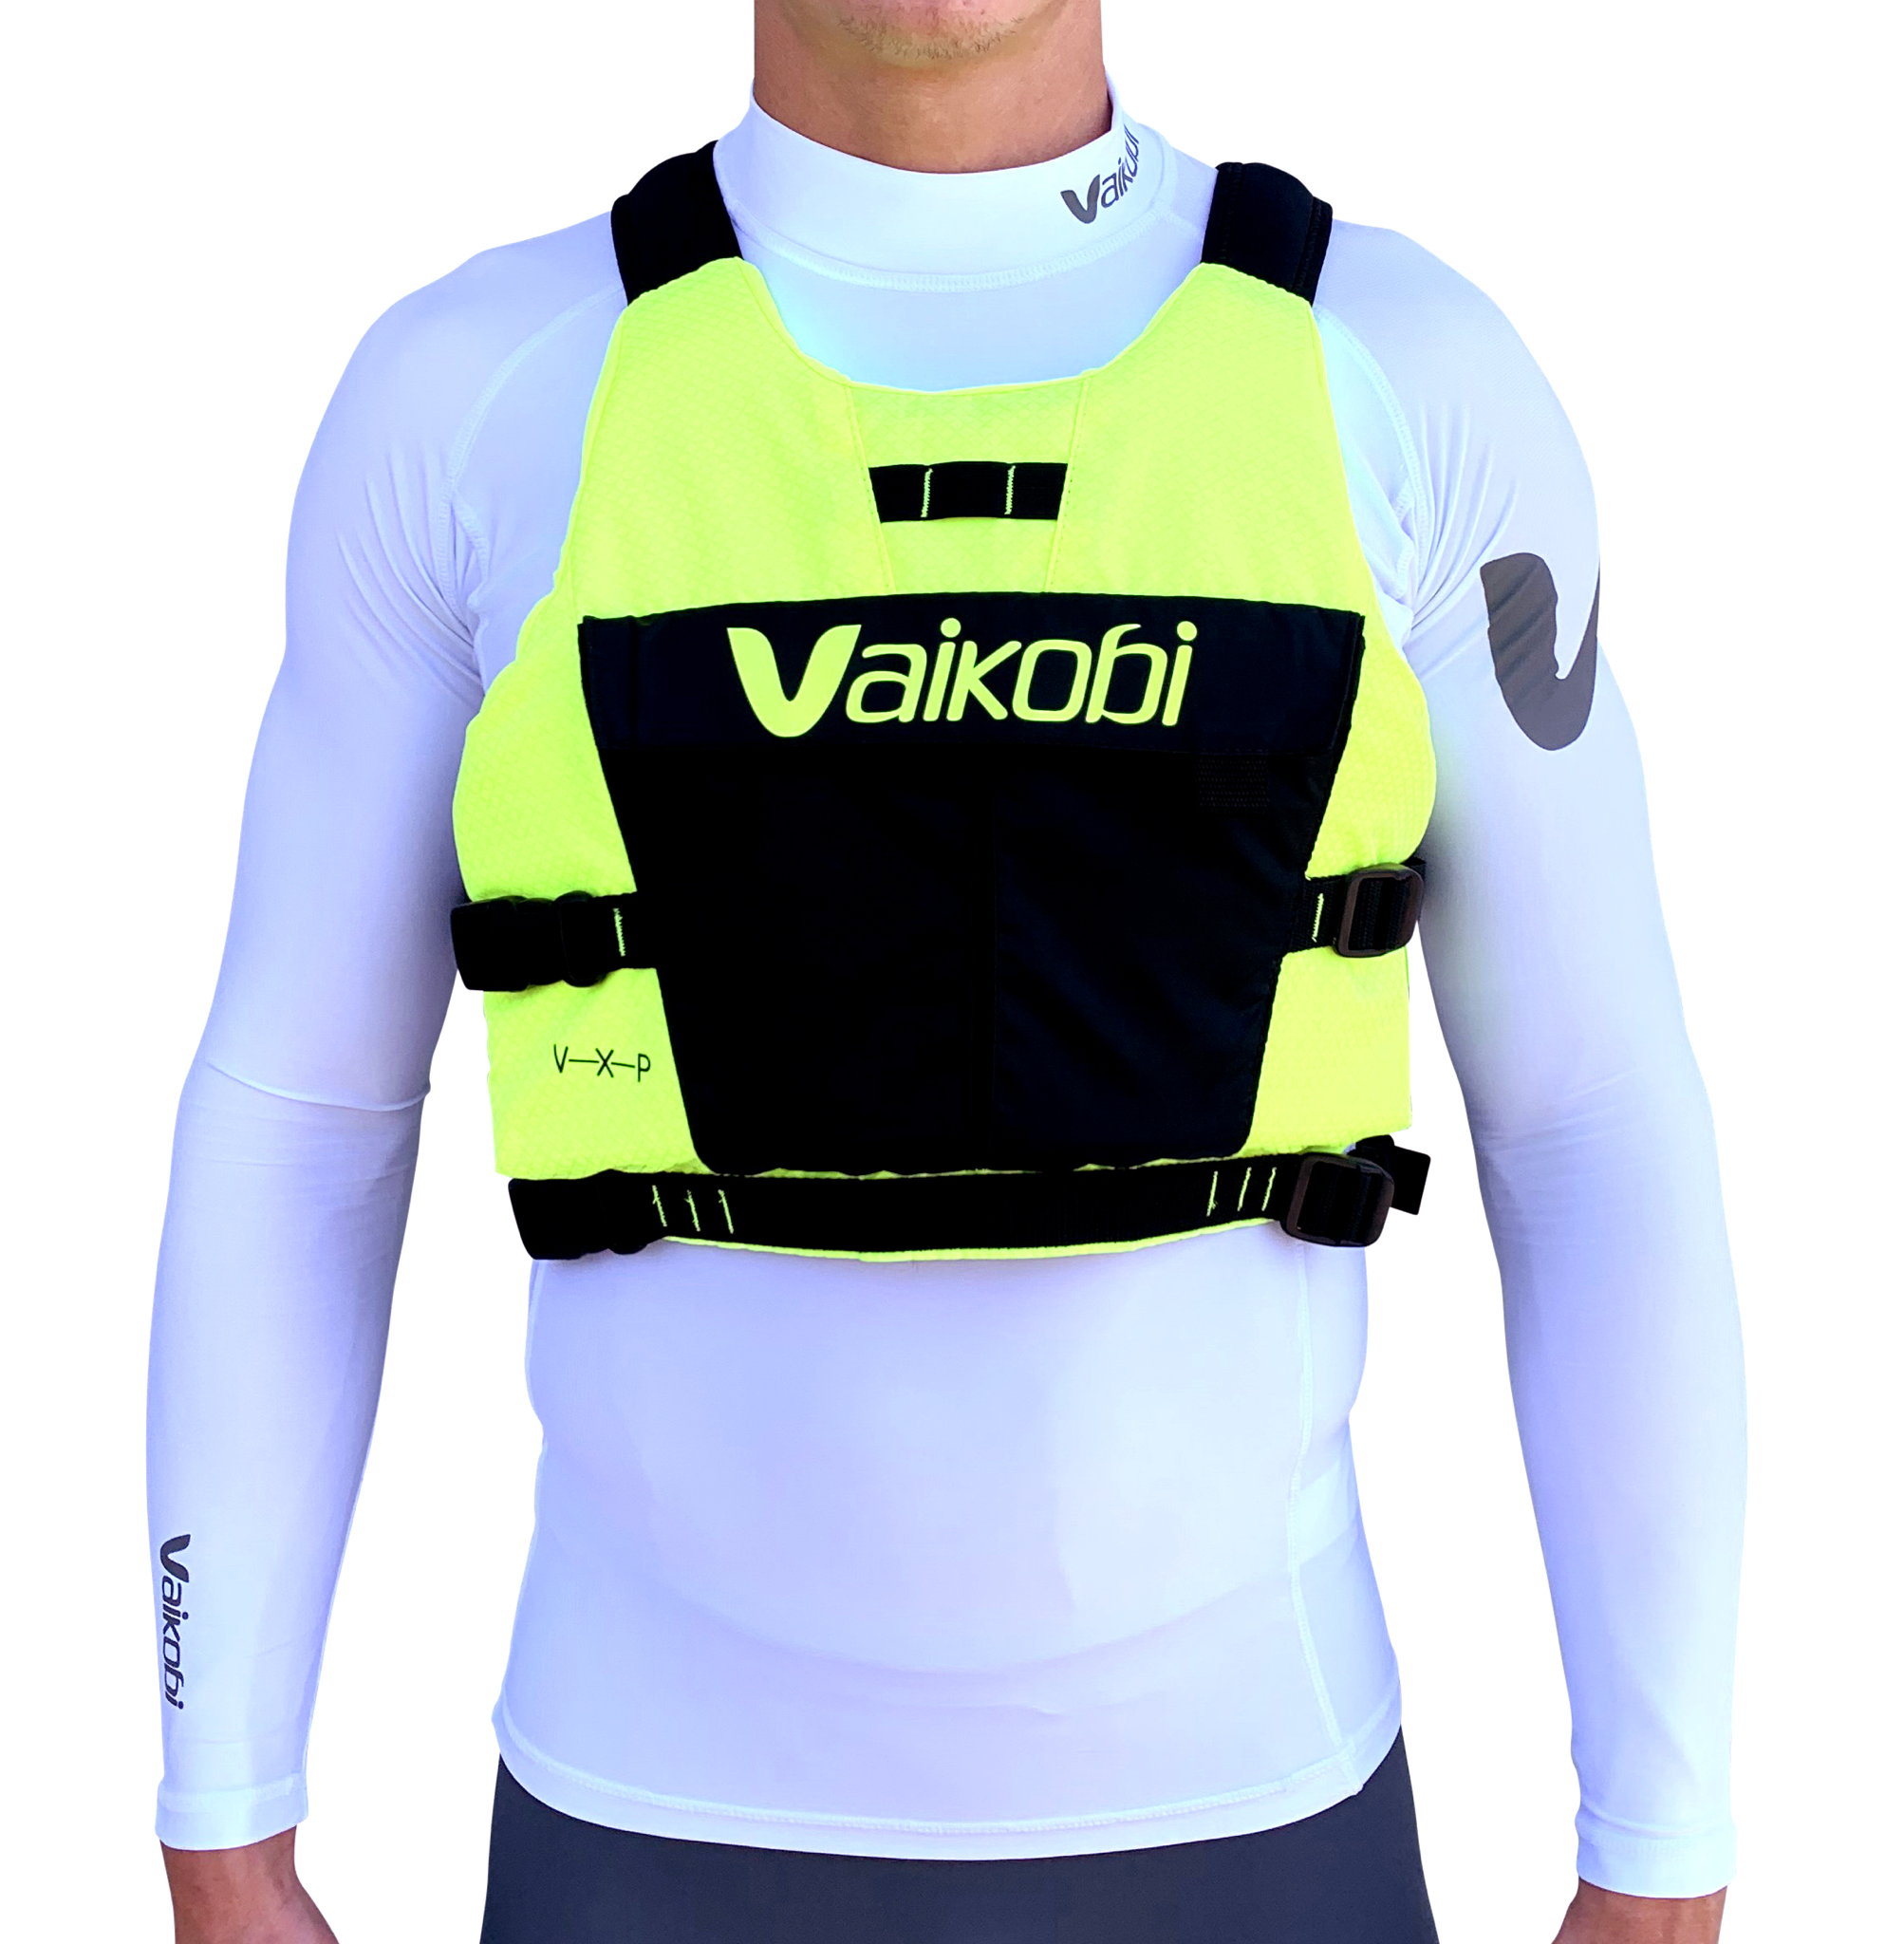 Vaikobi VXP Race PFD - Fluro Yellow/Black 00231